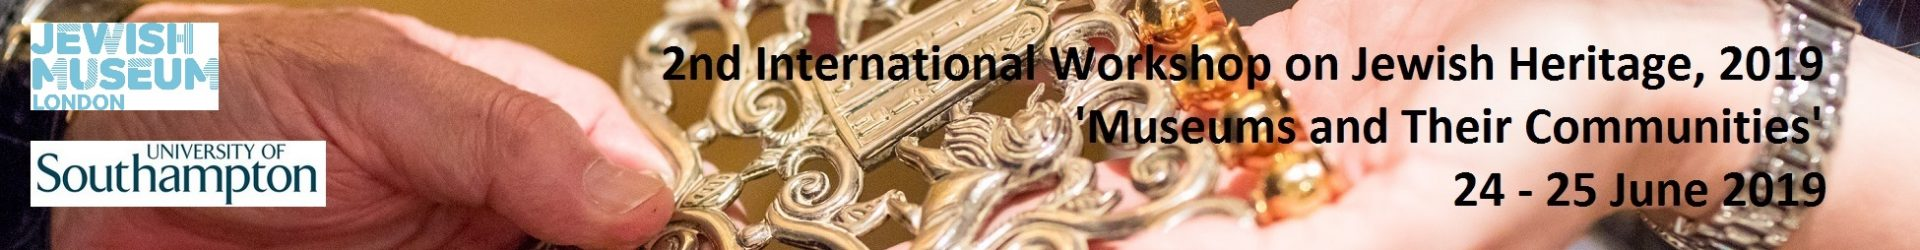 2nd International Workshop on Jewish Heritage, 2019 'Museums and Their Communities'